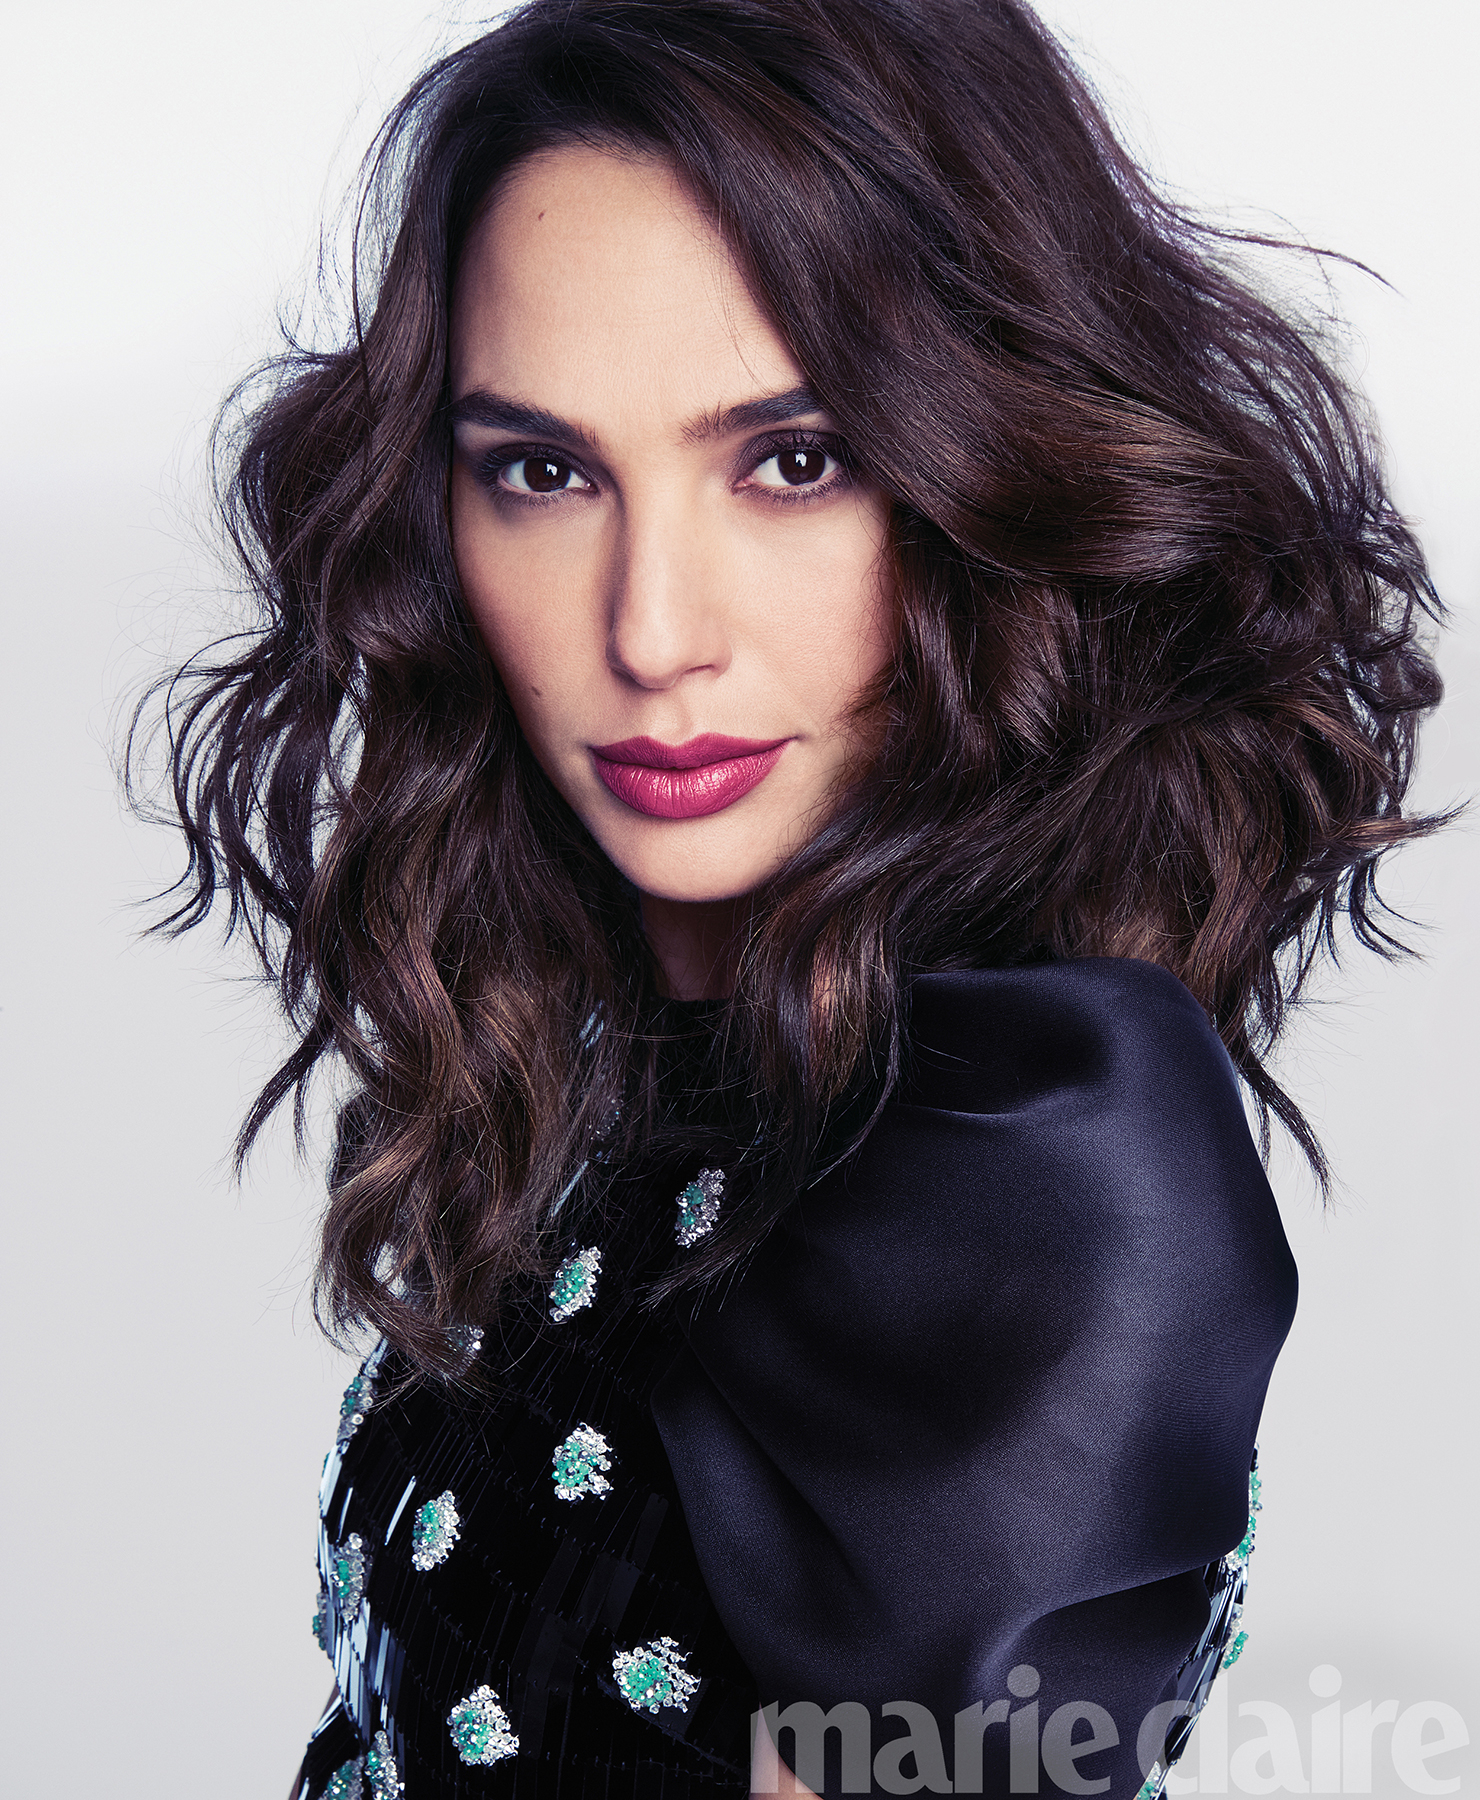 Wonder Woman Gal Gadot Covers Marie Claire, Vows To Fight For Good-7123